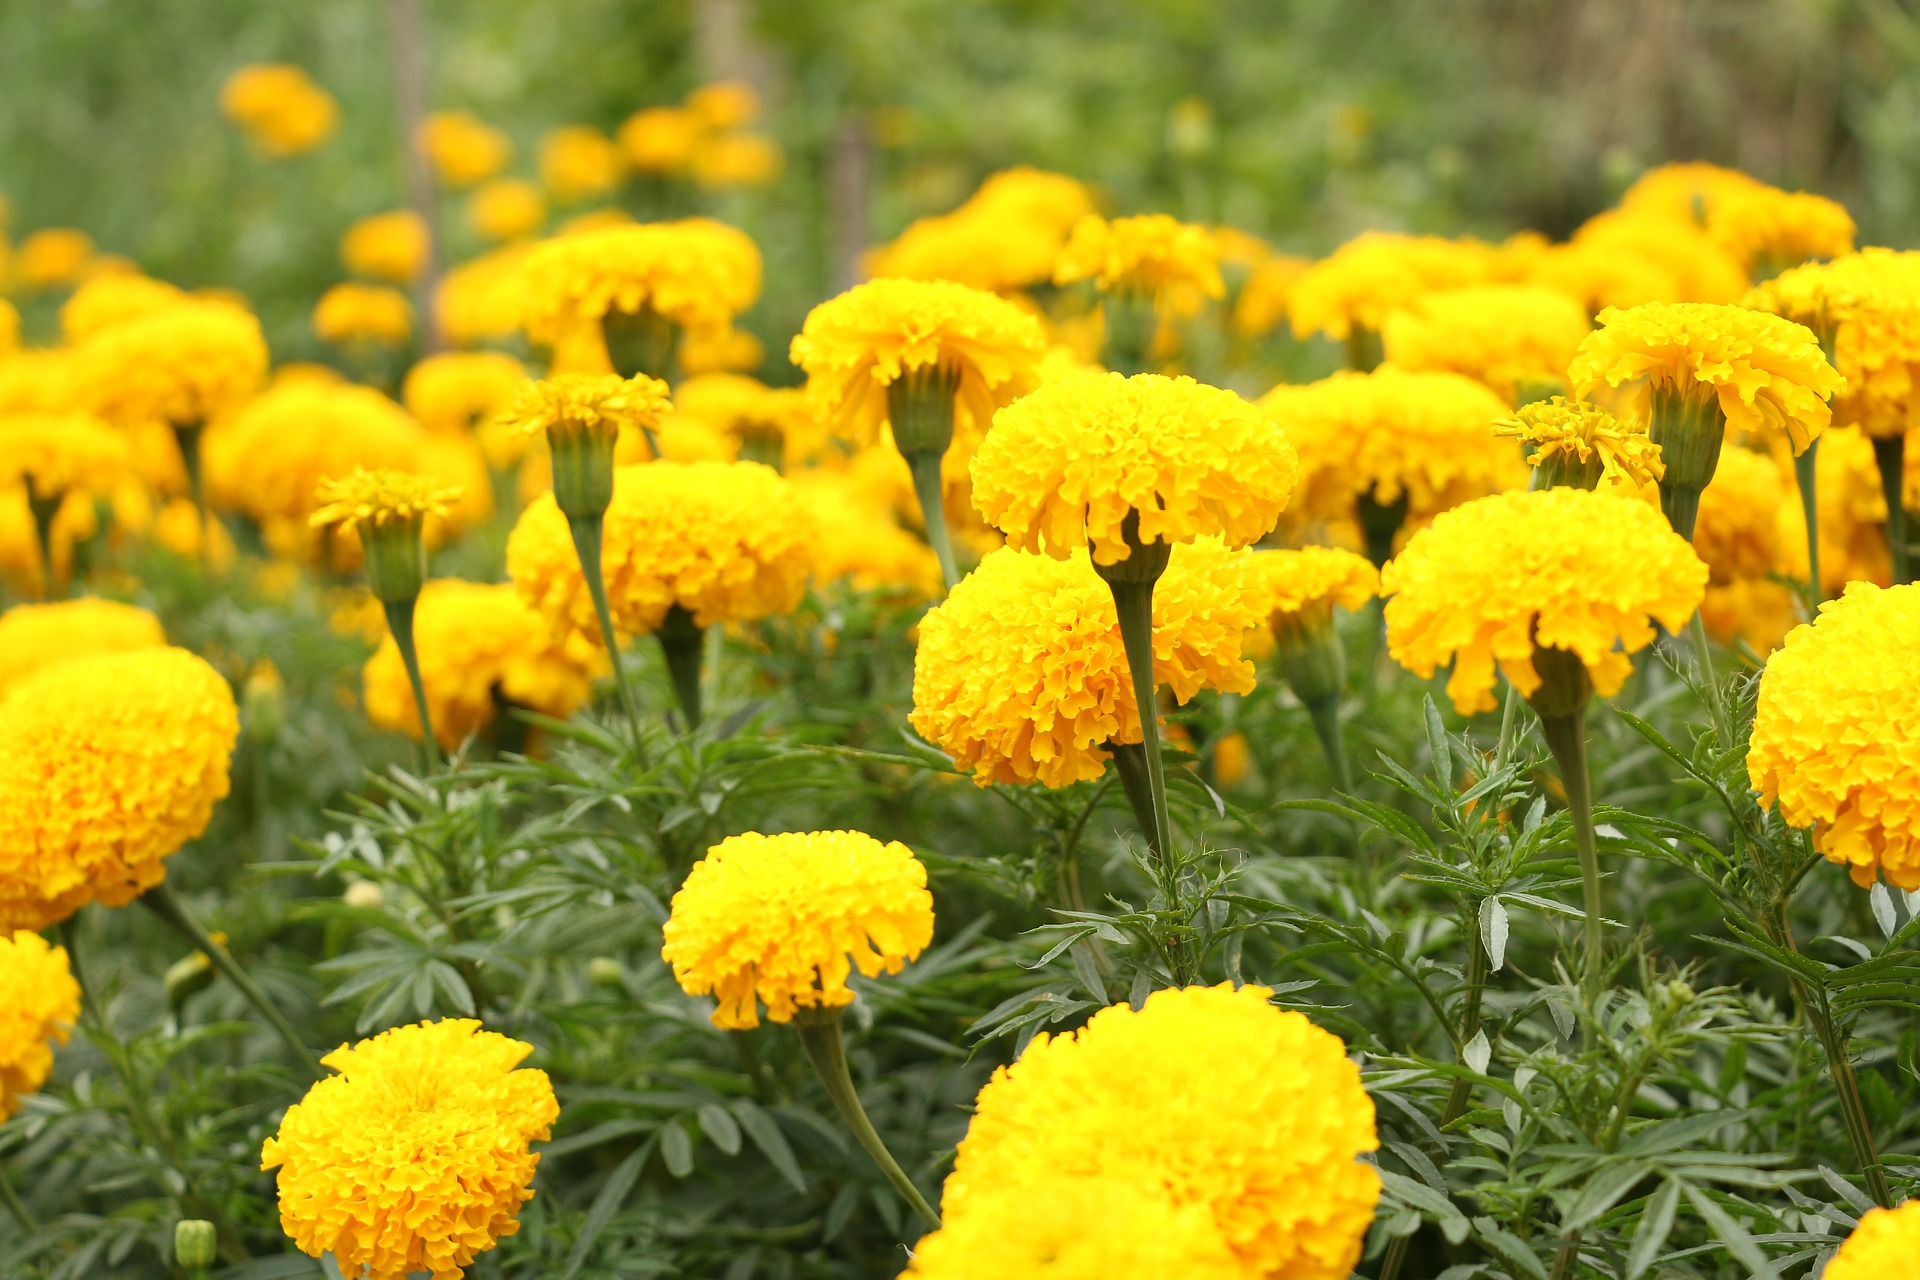 The Common Marigold, and Why It's Such A Wonderful Plant Ally